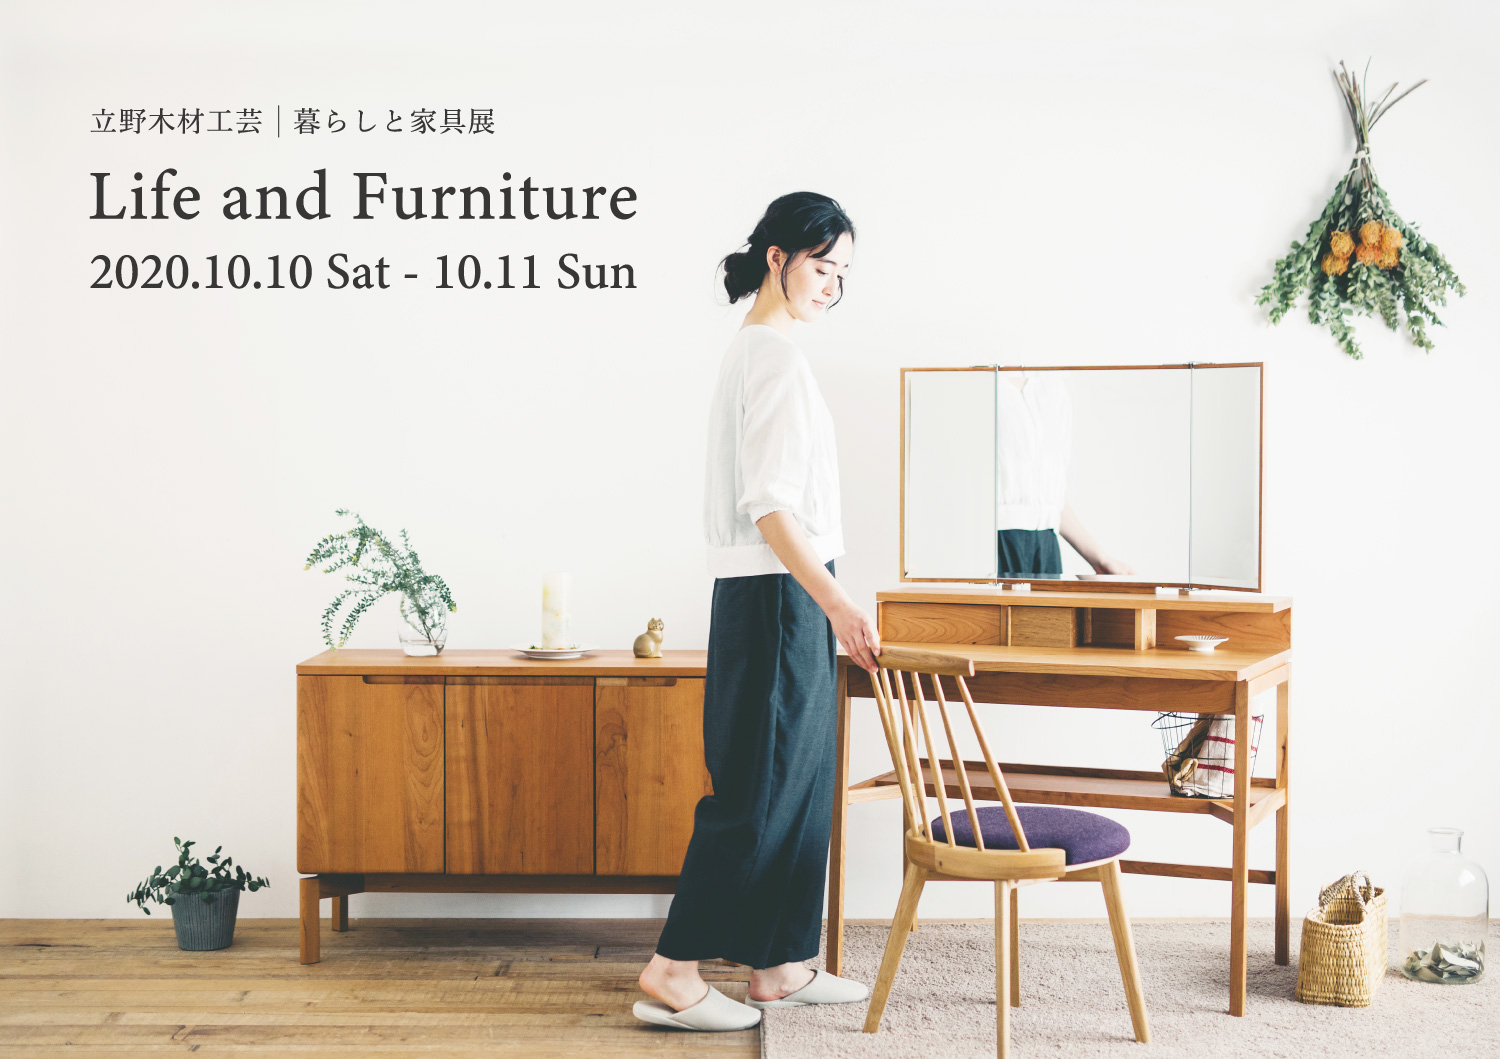 【Life and Furniture】自社イベント開催!「2020.10.10 – 11」